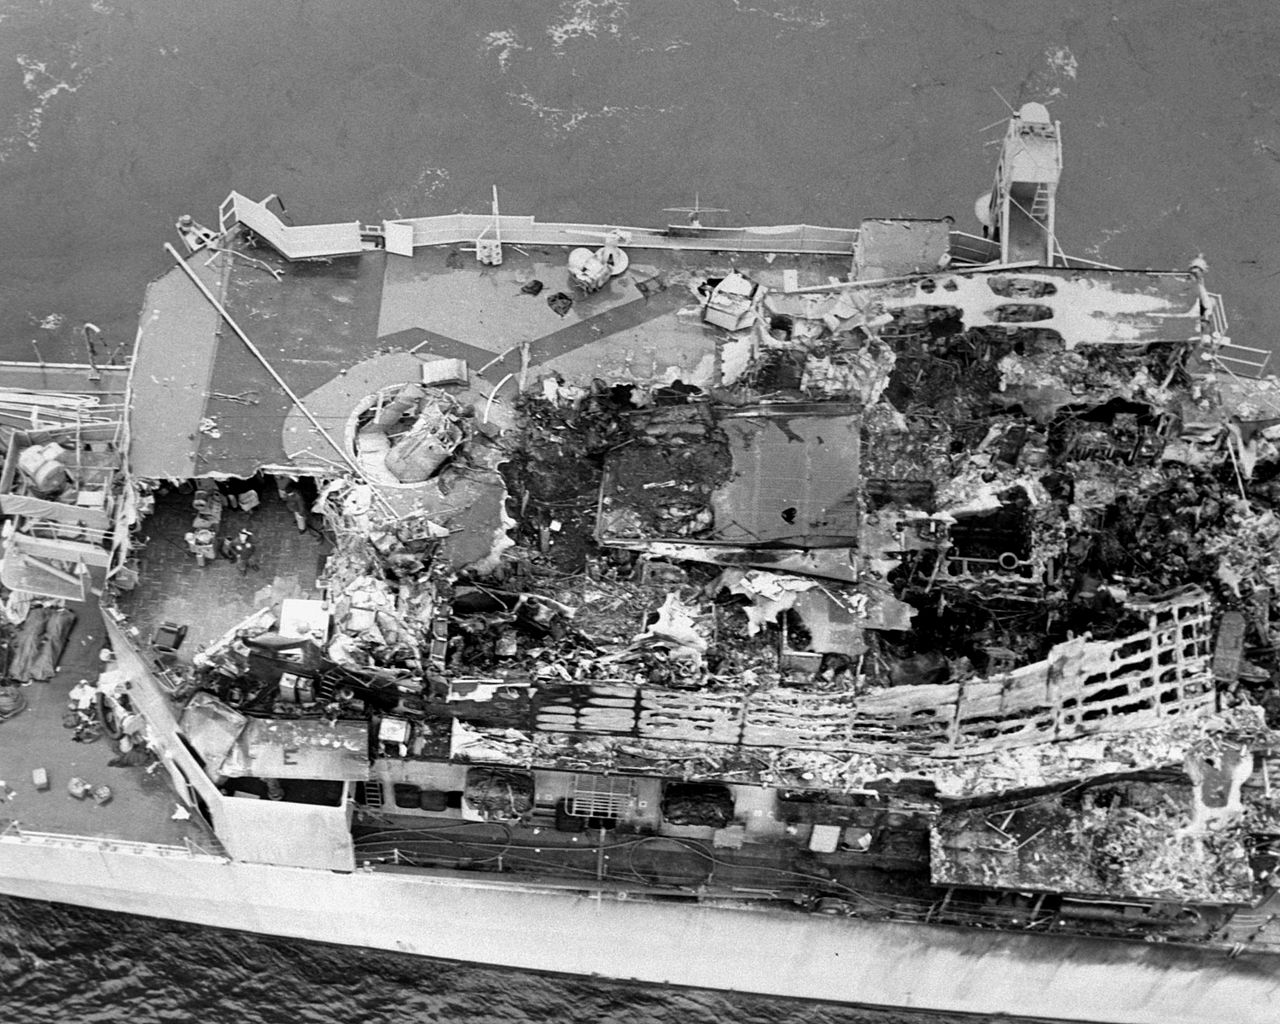 The night USS Belknap Guided Missile Cruiser and USS John F. Kennedy aircraft carrier collided in the Mediterranean Sea